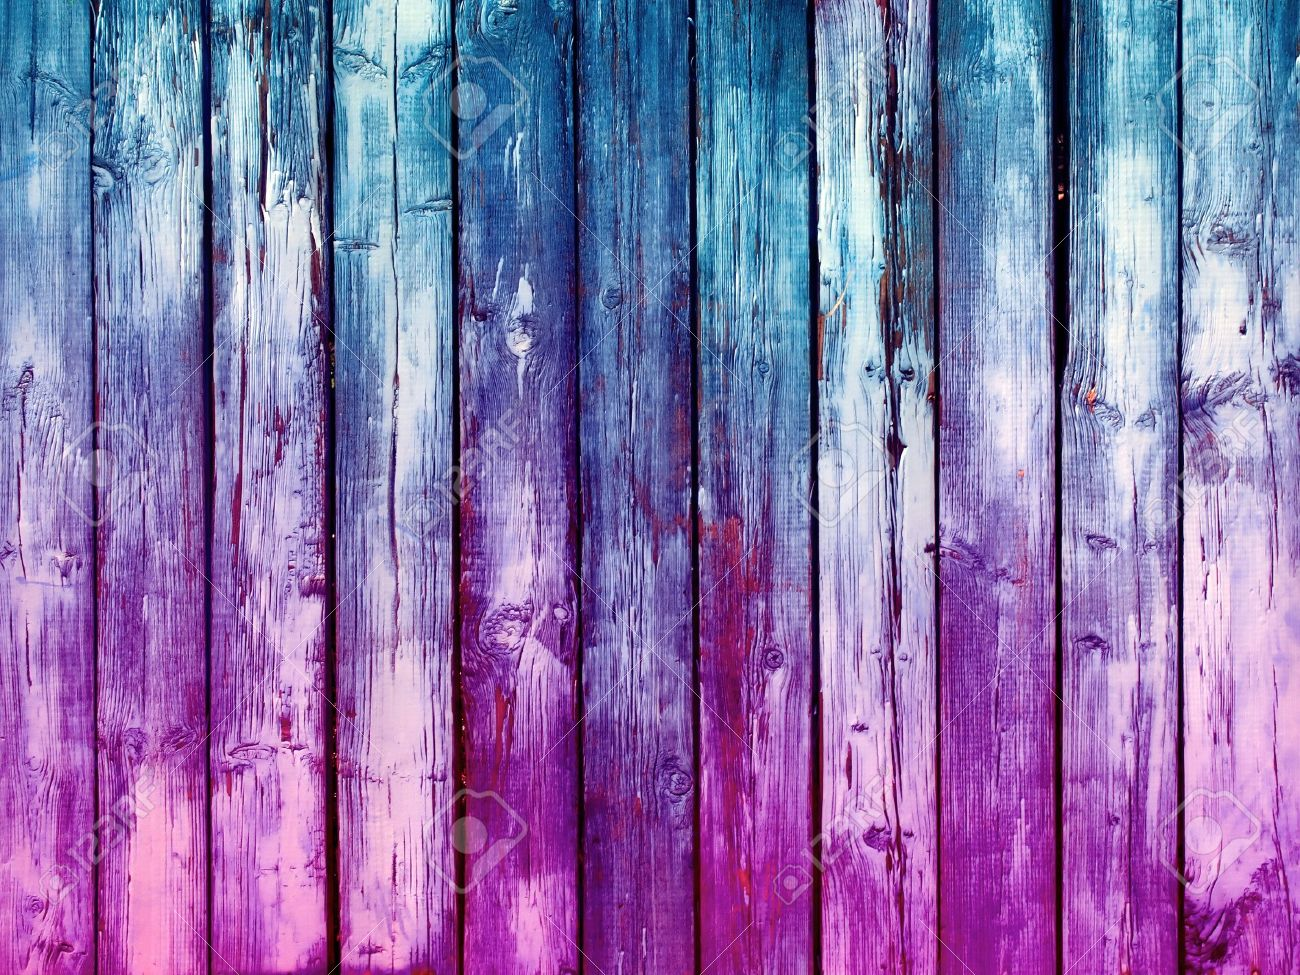 Blue and Pink  Wood Background Stock Photo - 9536708